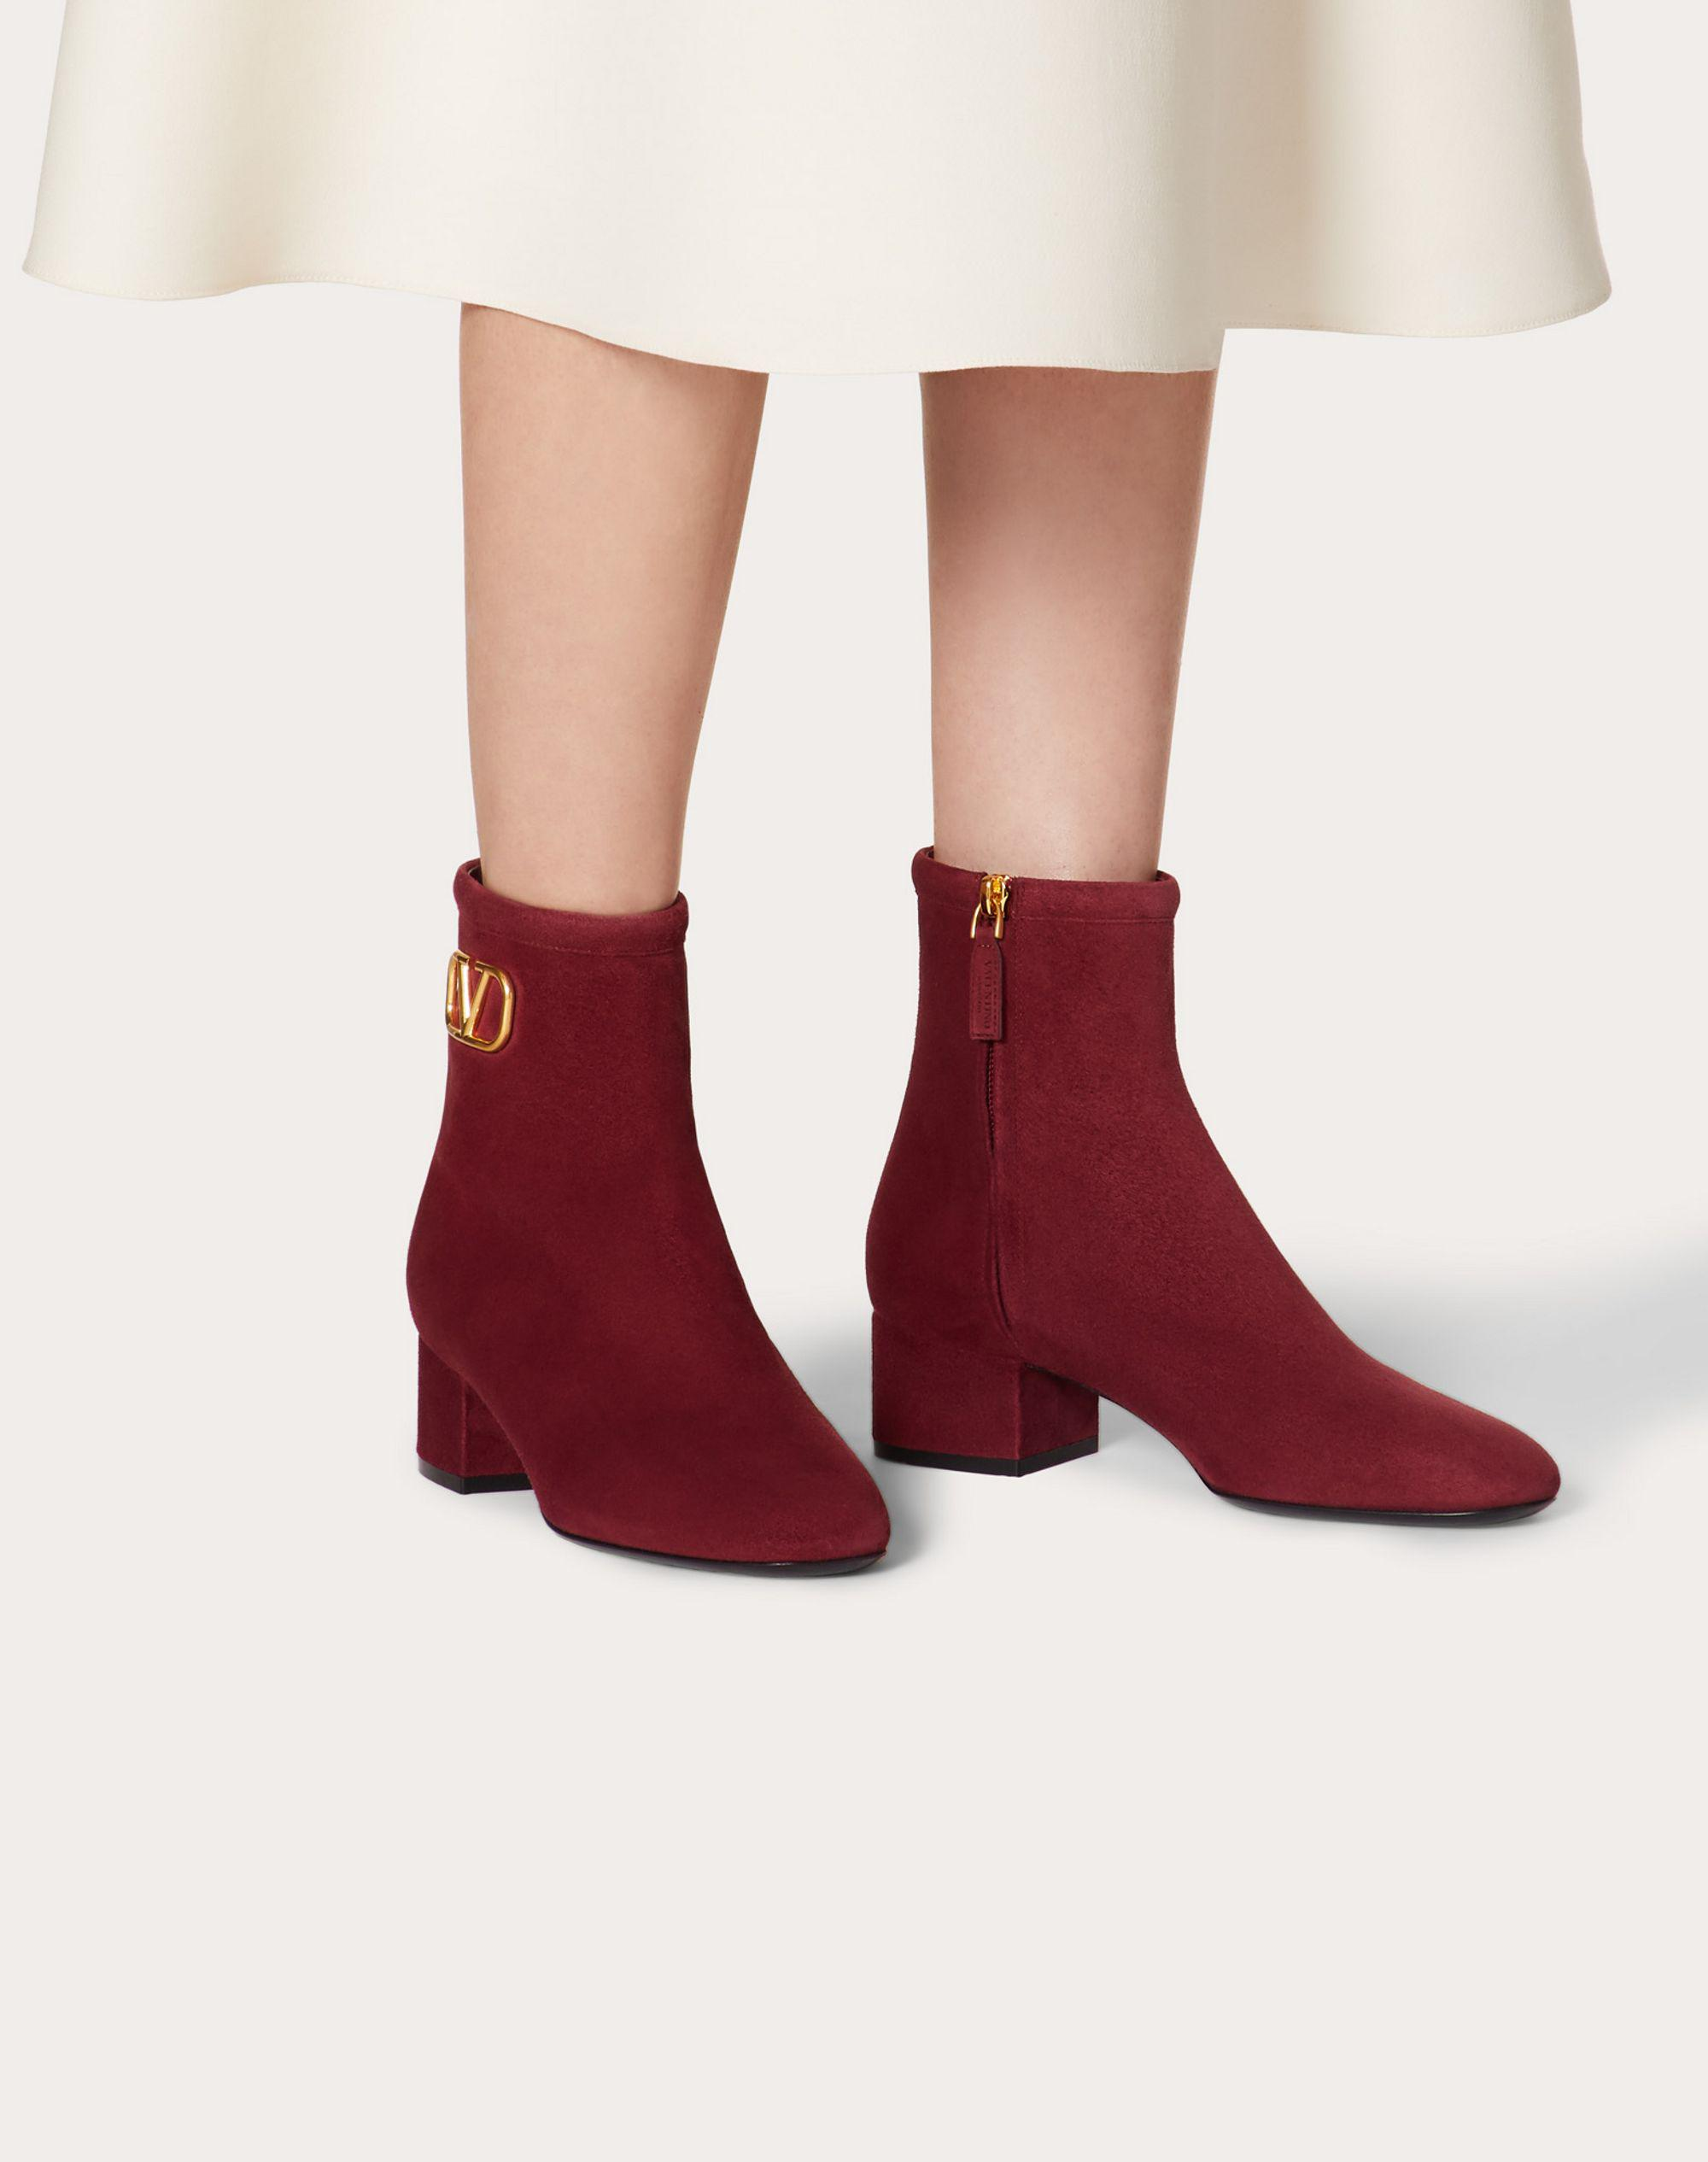 VLogo Signature Suede Ankle Boot 45 mm / 1.8 in. 5